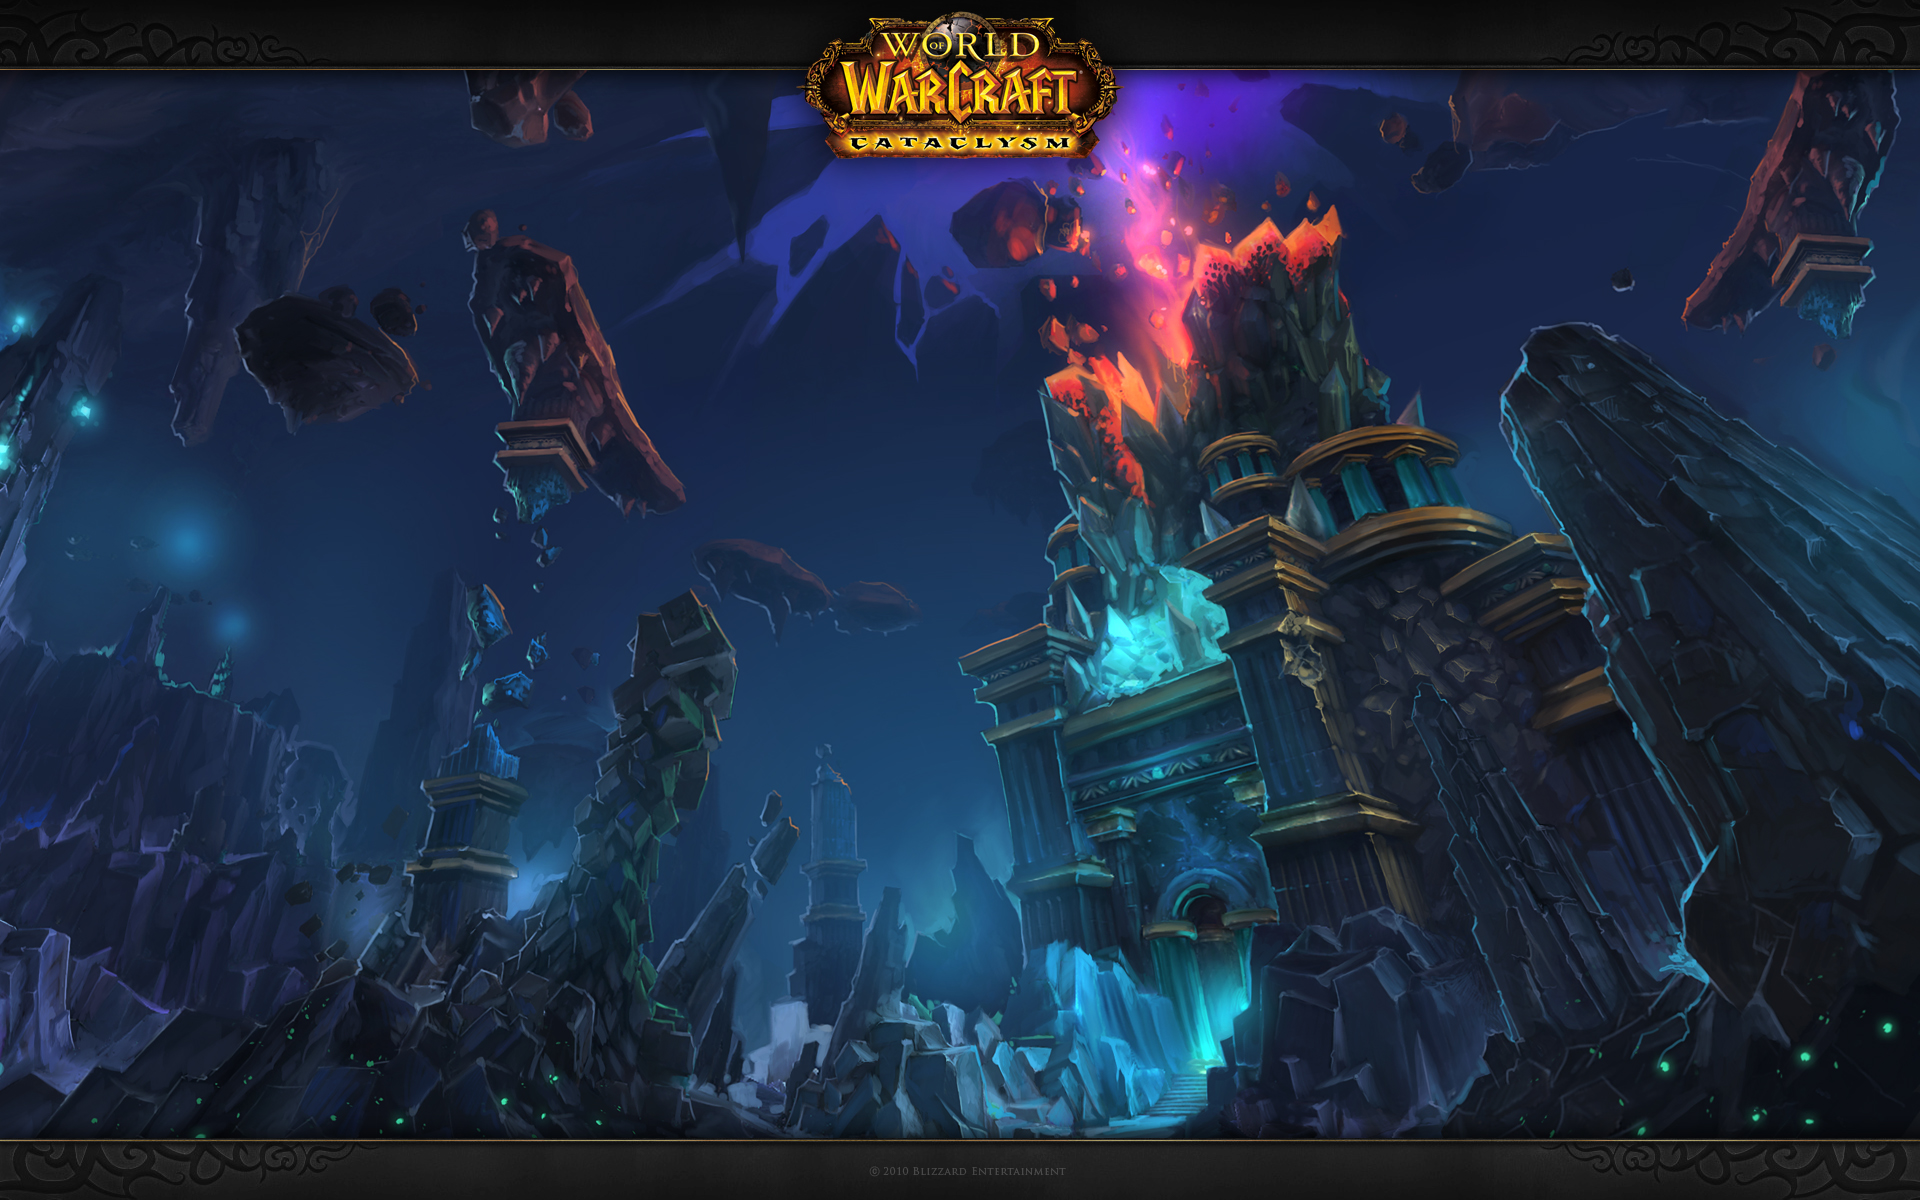 World of Warcraft wallpaper 7